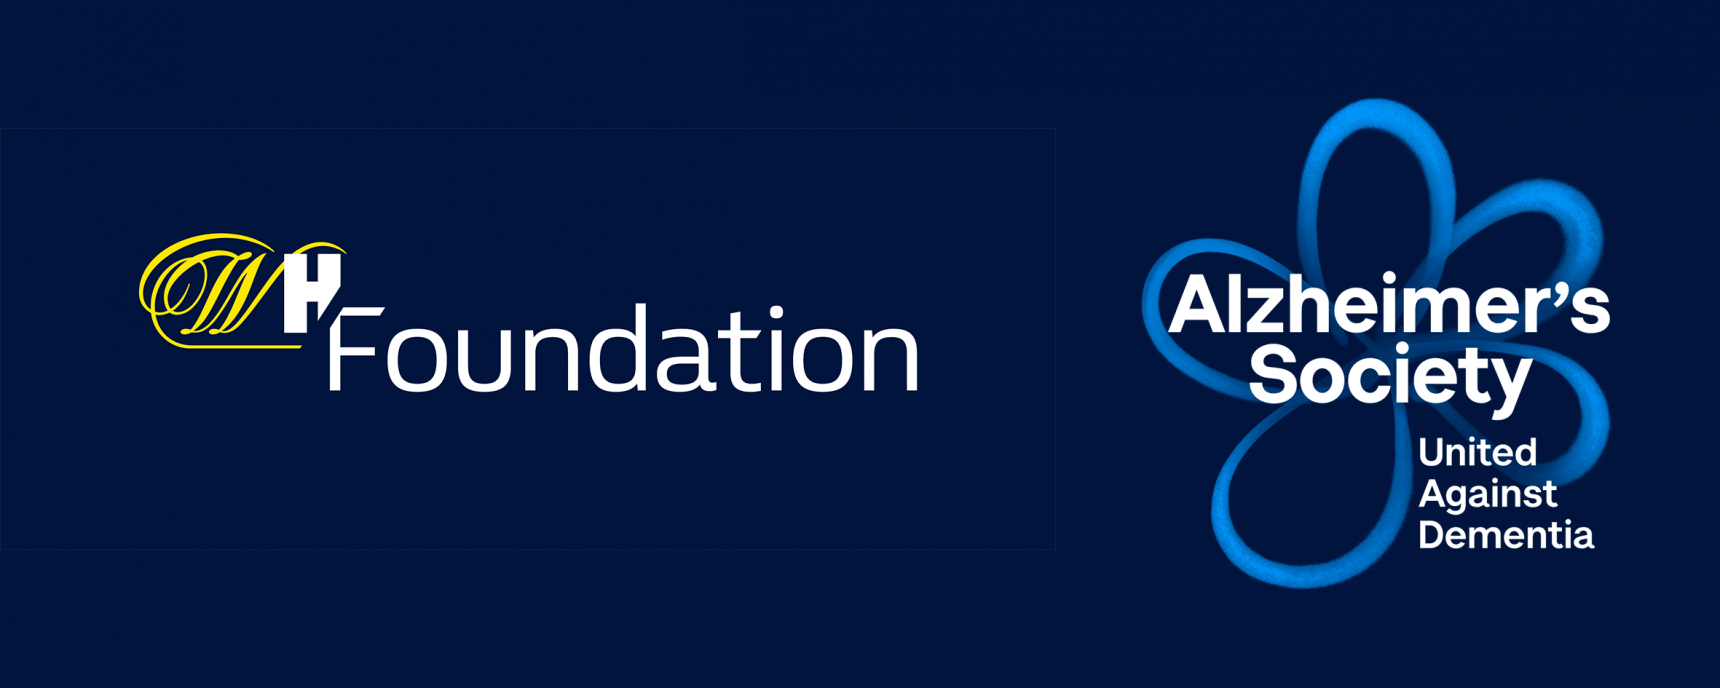 William Hill Association With Alzheimer's Charity Criticised